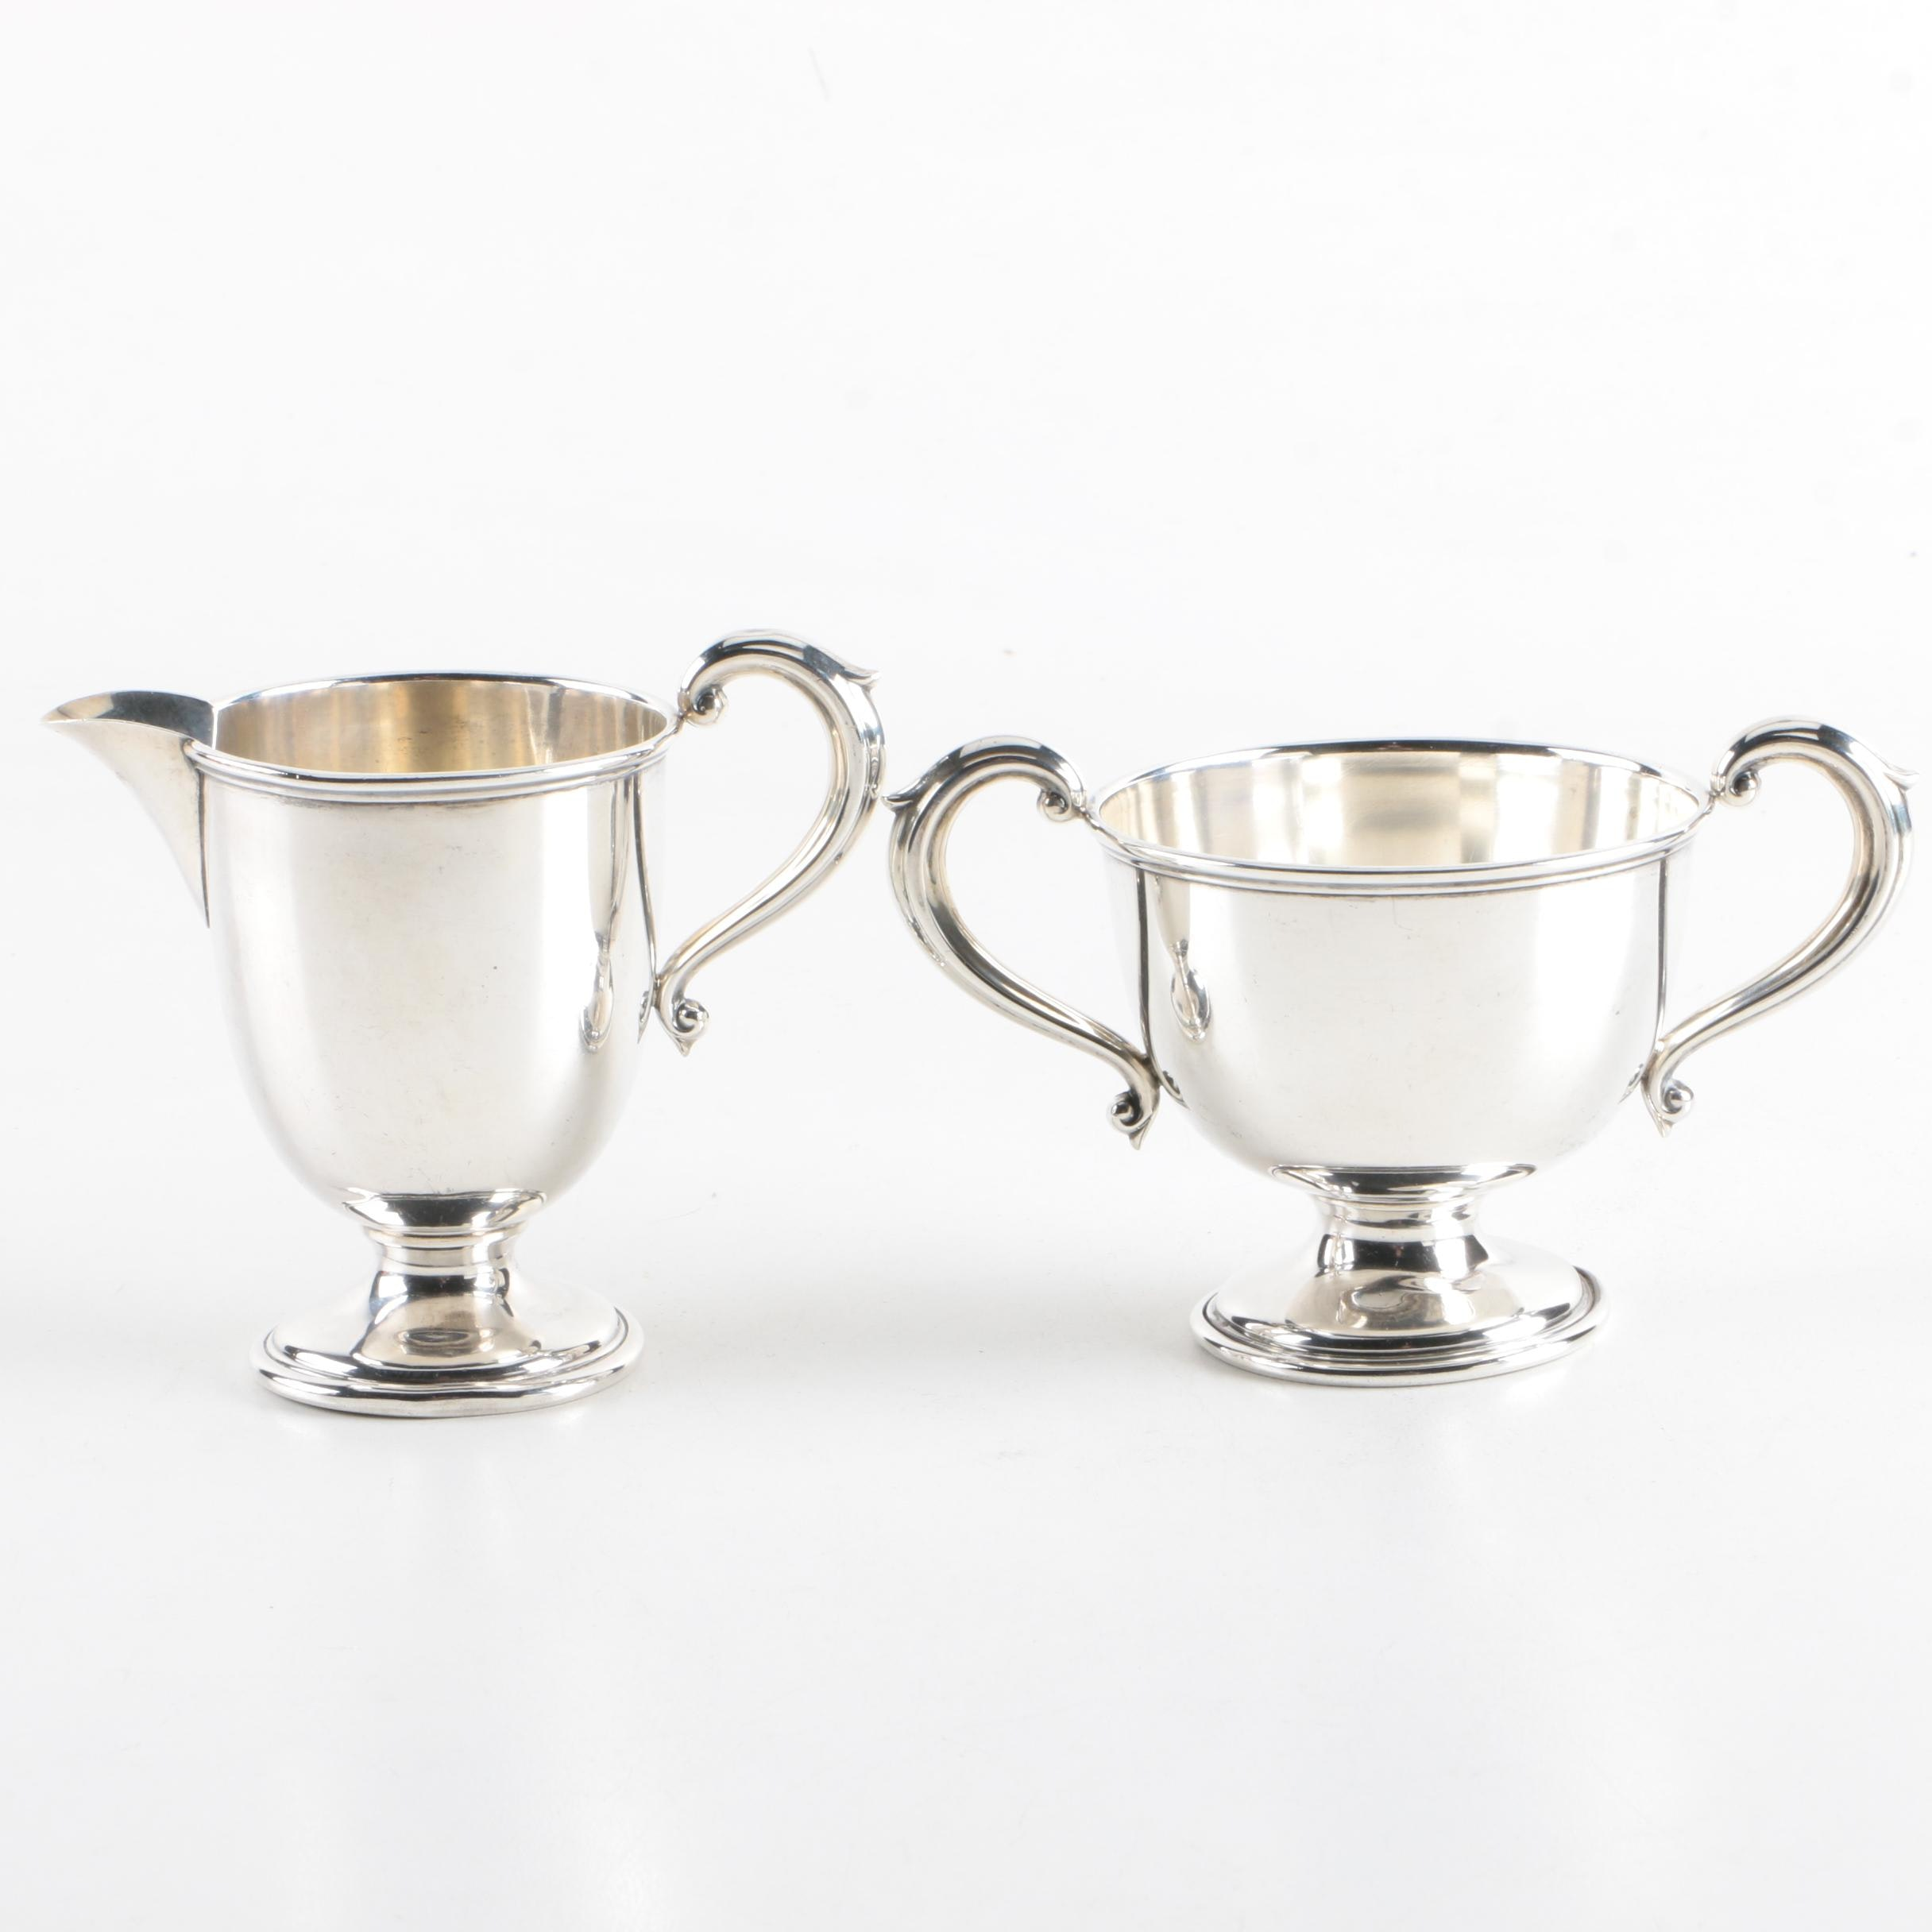 Mueck-Carey Co. Sterling Silver Creamer and Sugar Bowl